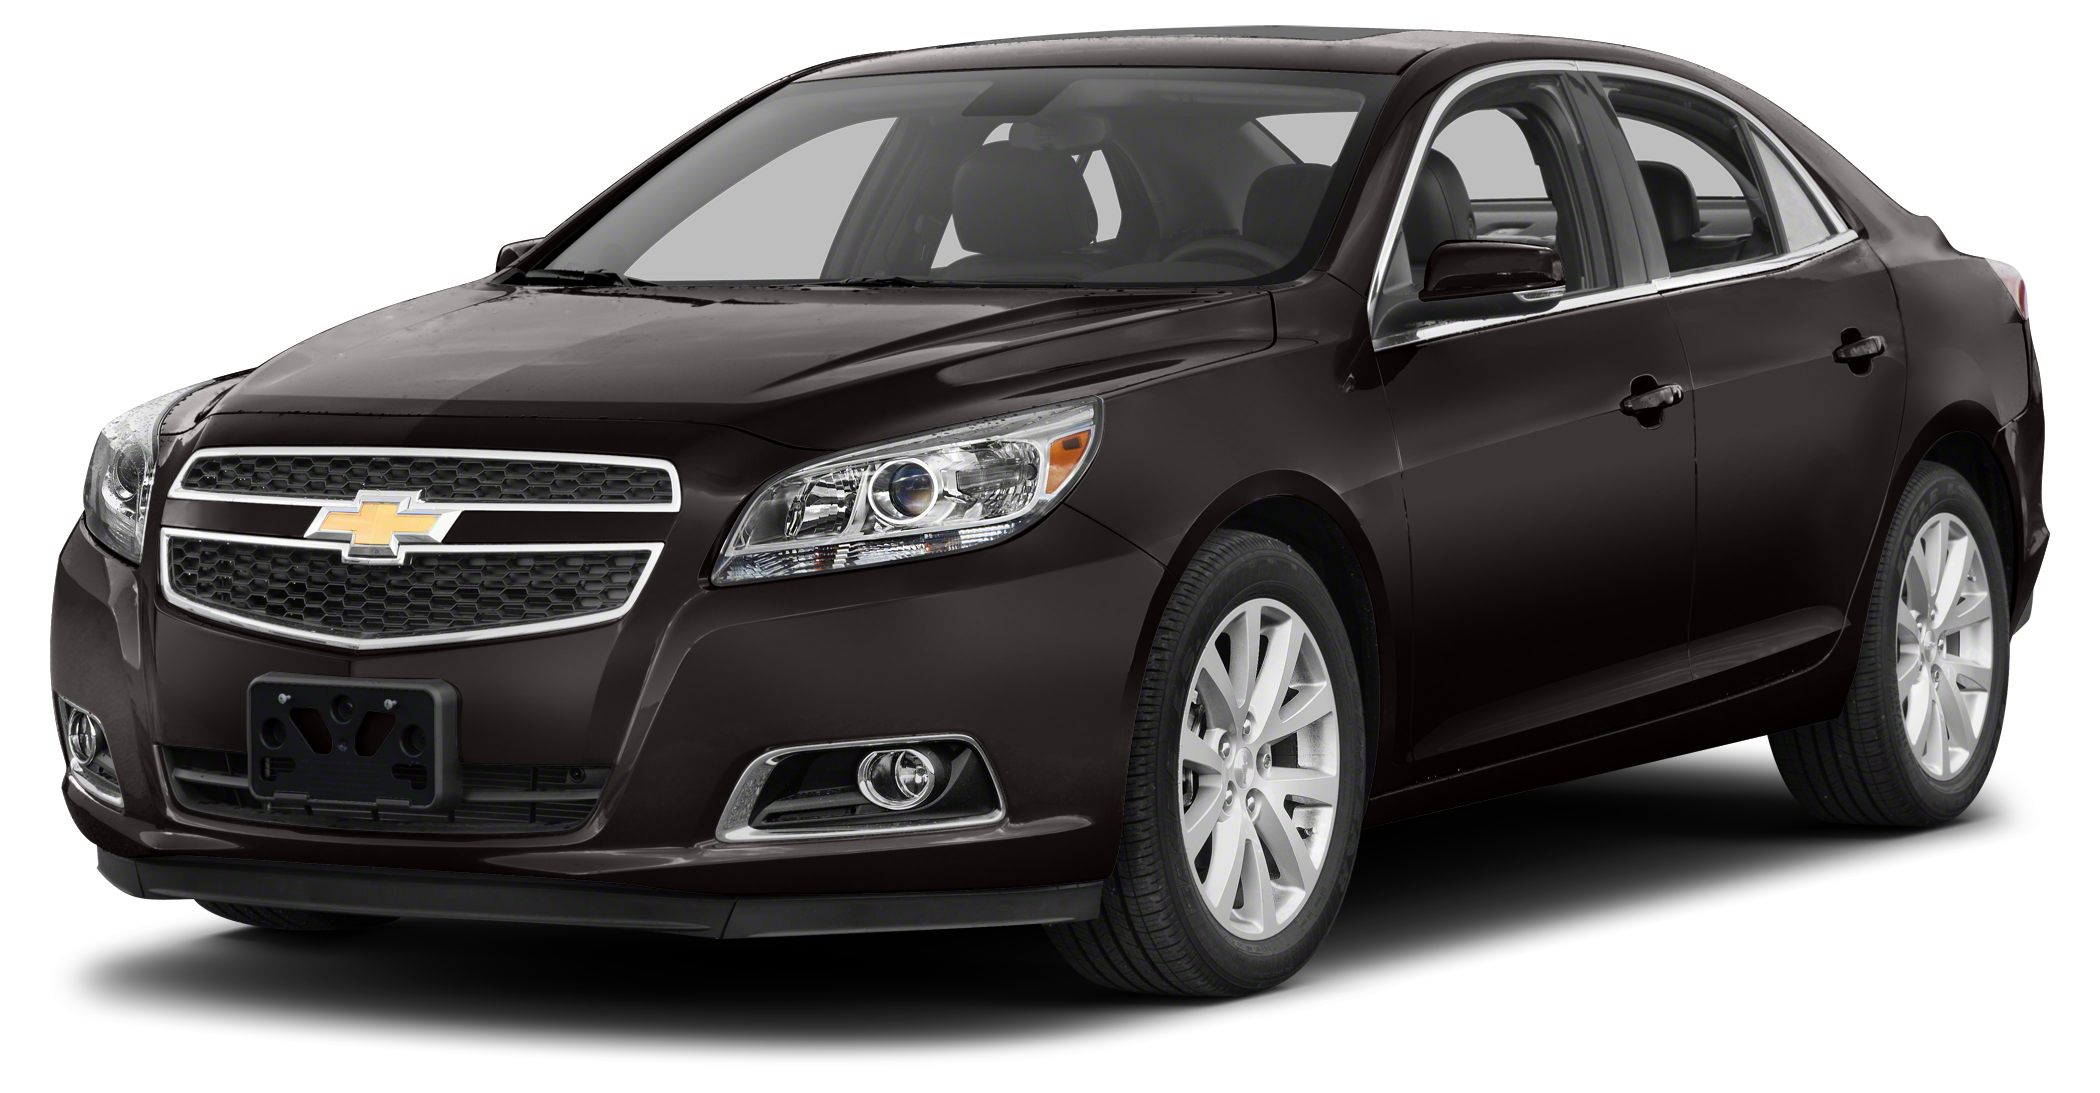 2013 Chevrolet Malibu 1LT JUST REPRICED FROM 17845 PRICED TO MOVE 1900 below Kelley Blue Book